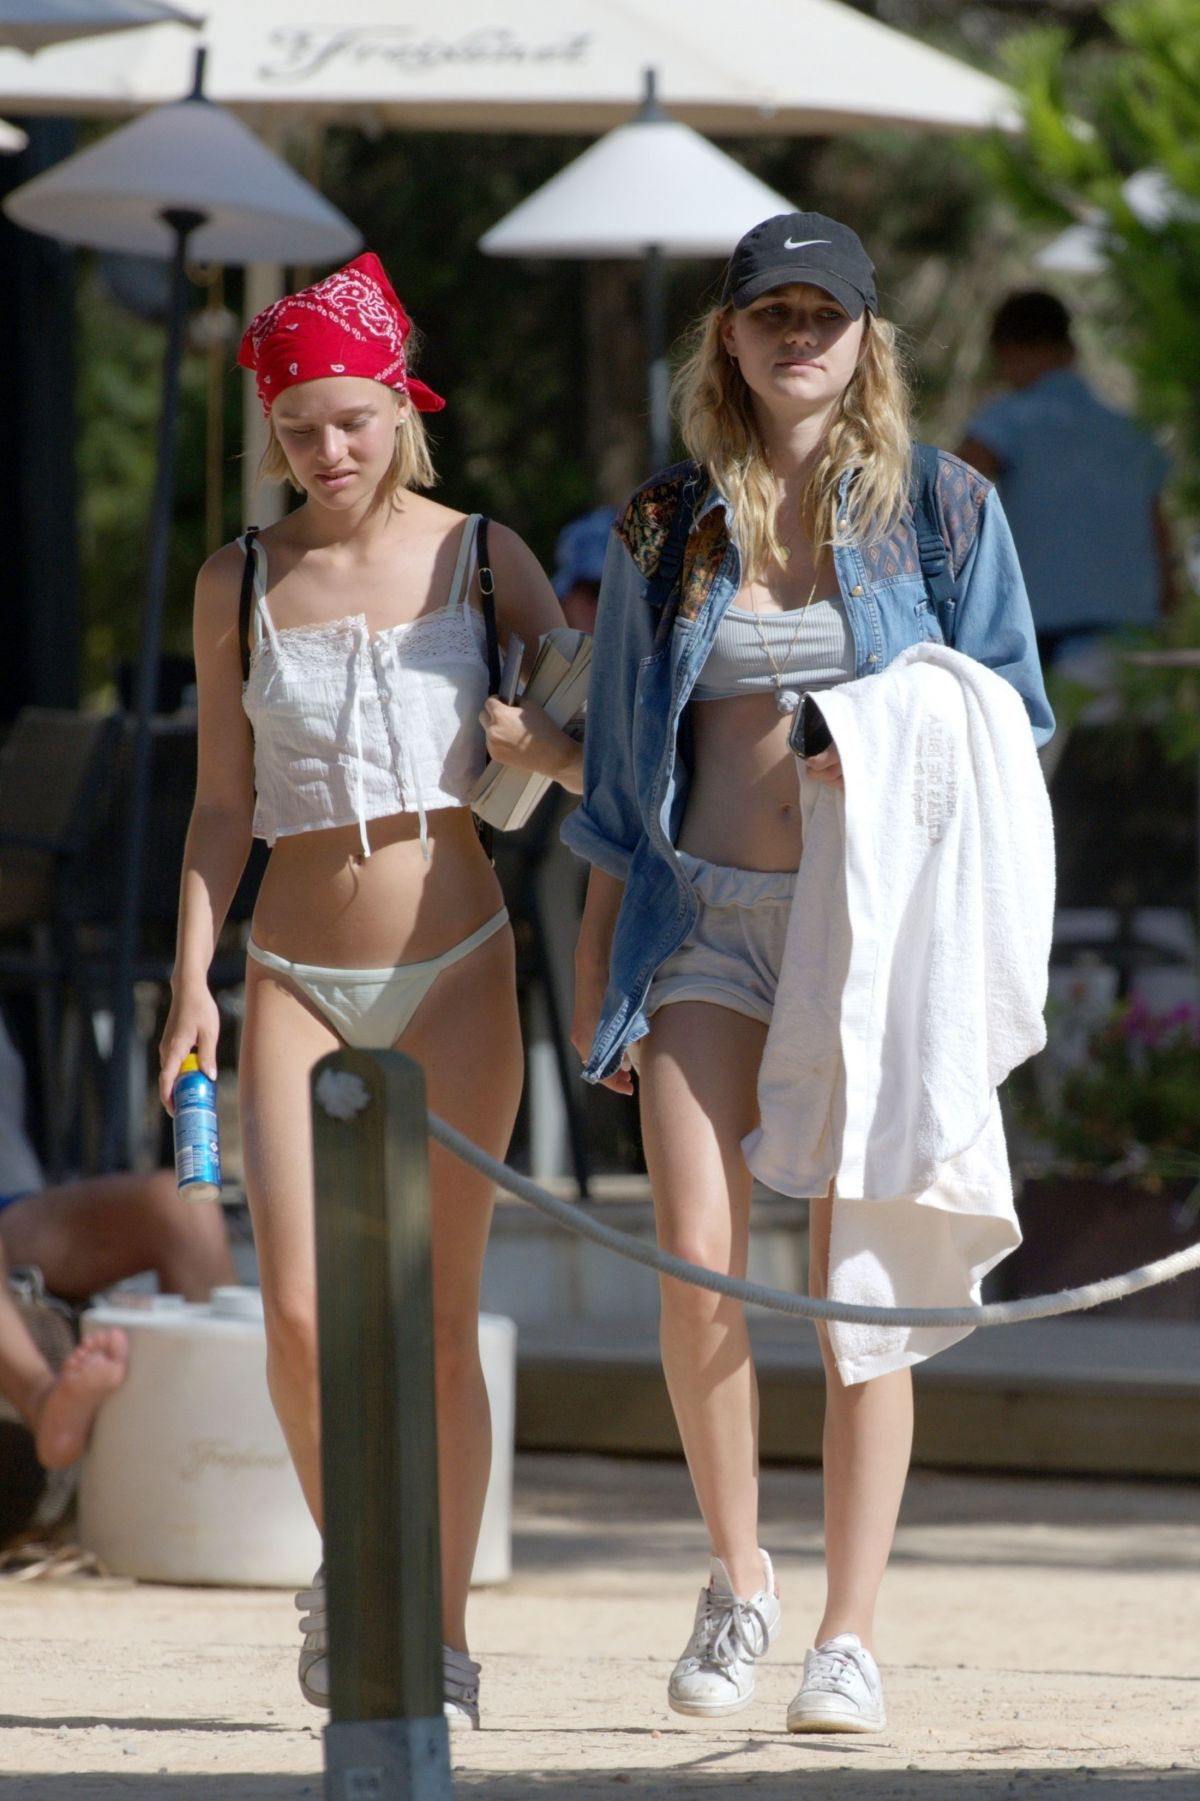 Immy Waterhouse With a friend seen enjoying a holiday in Ibiza